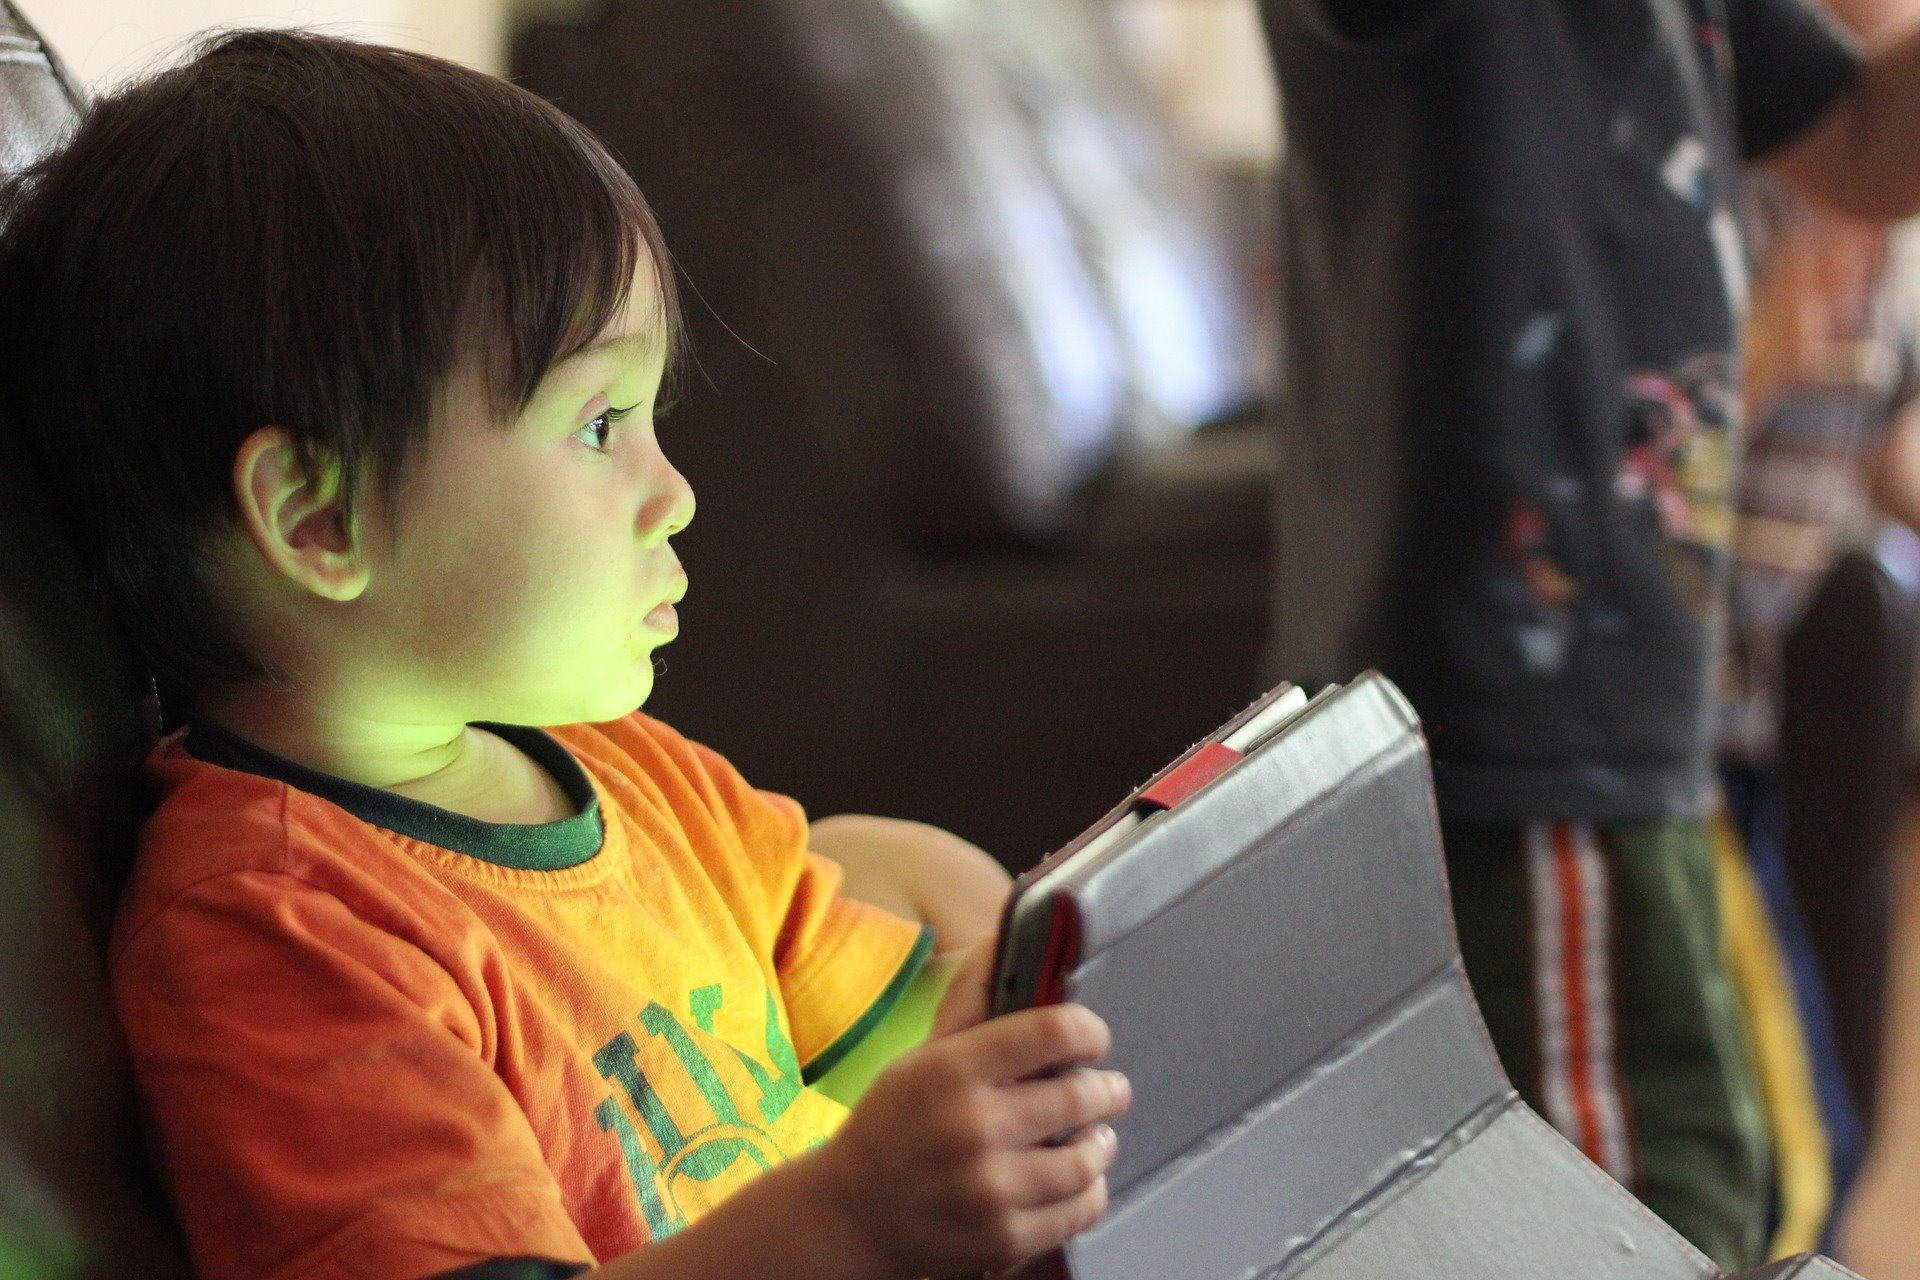 Child in front of a screen